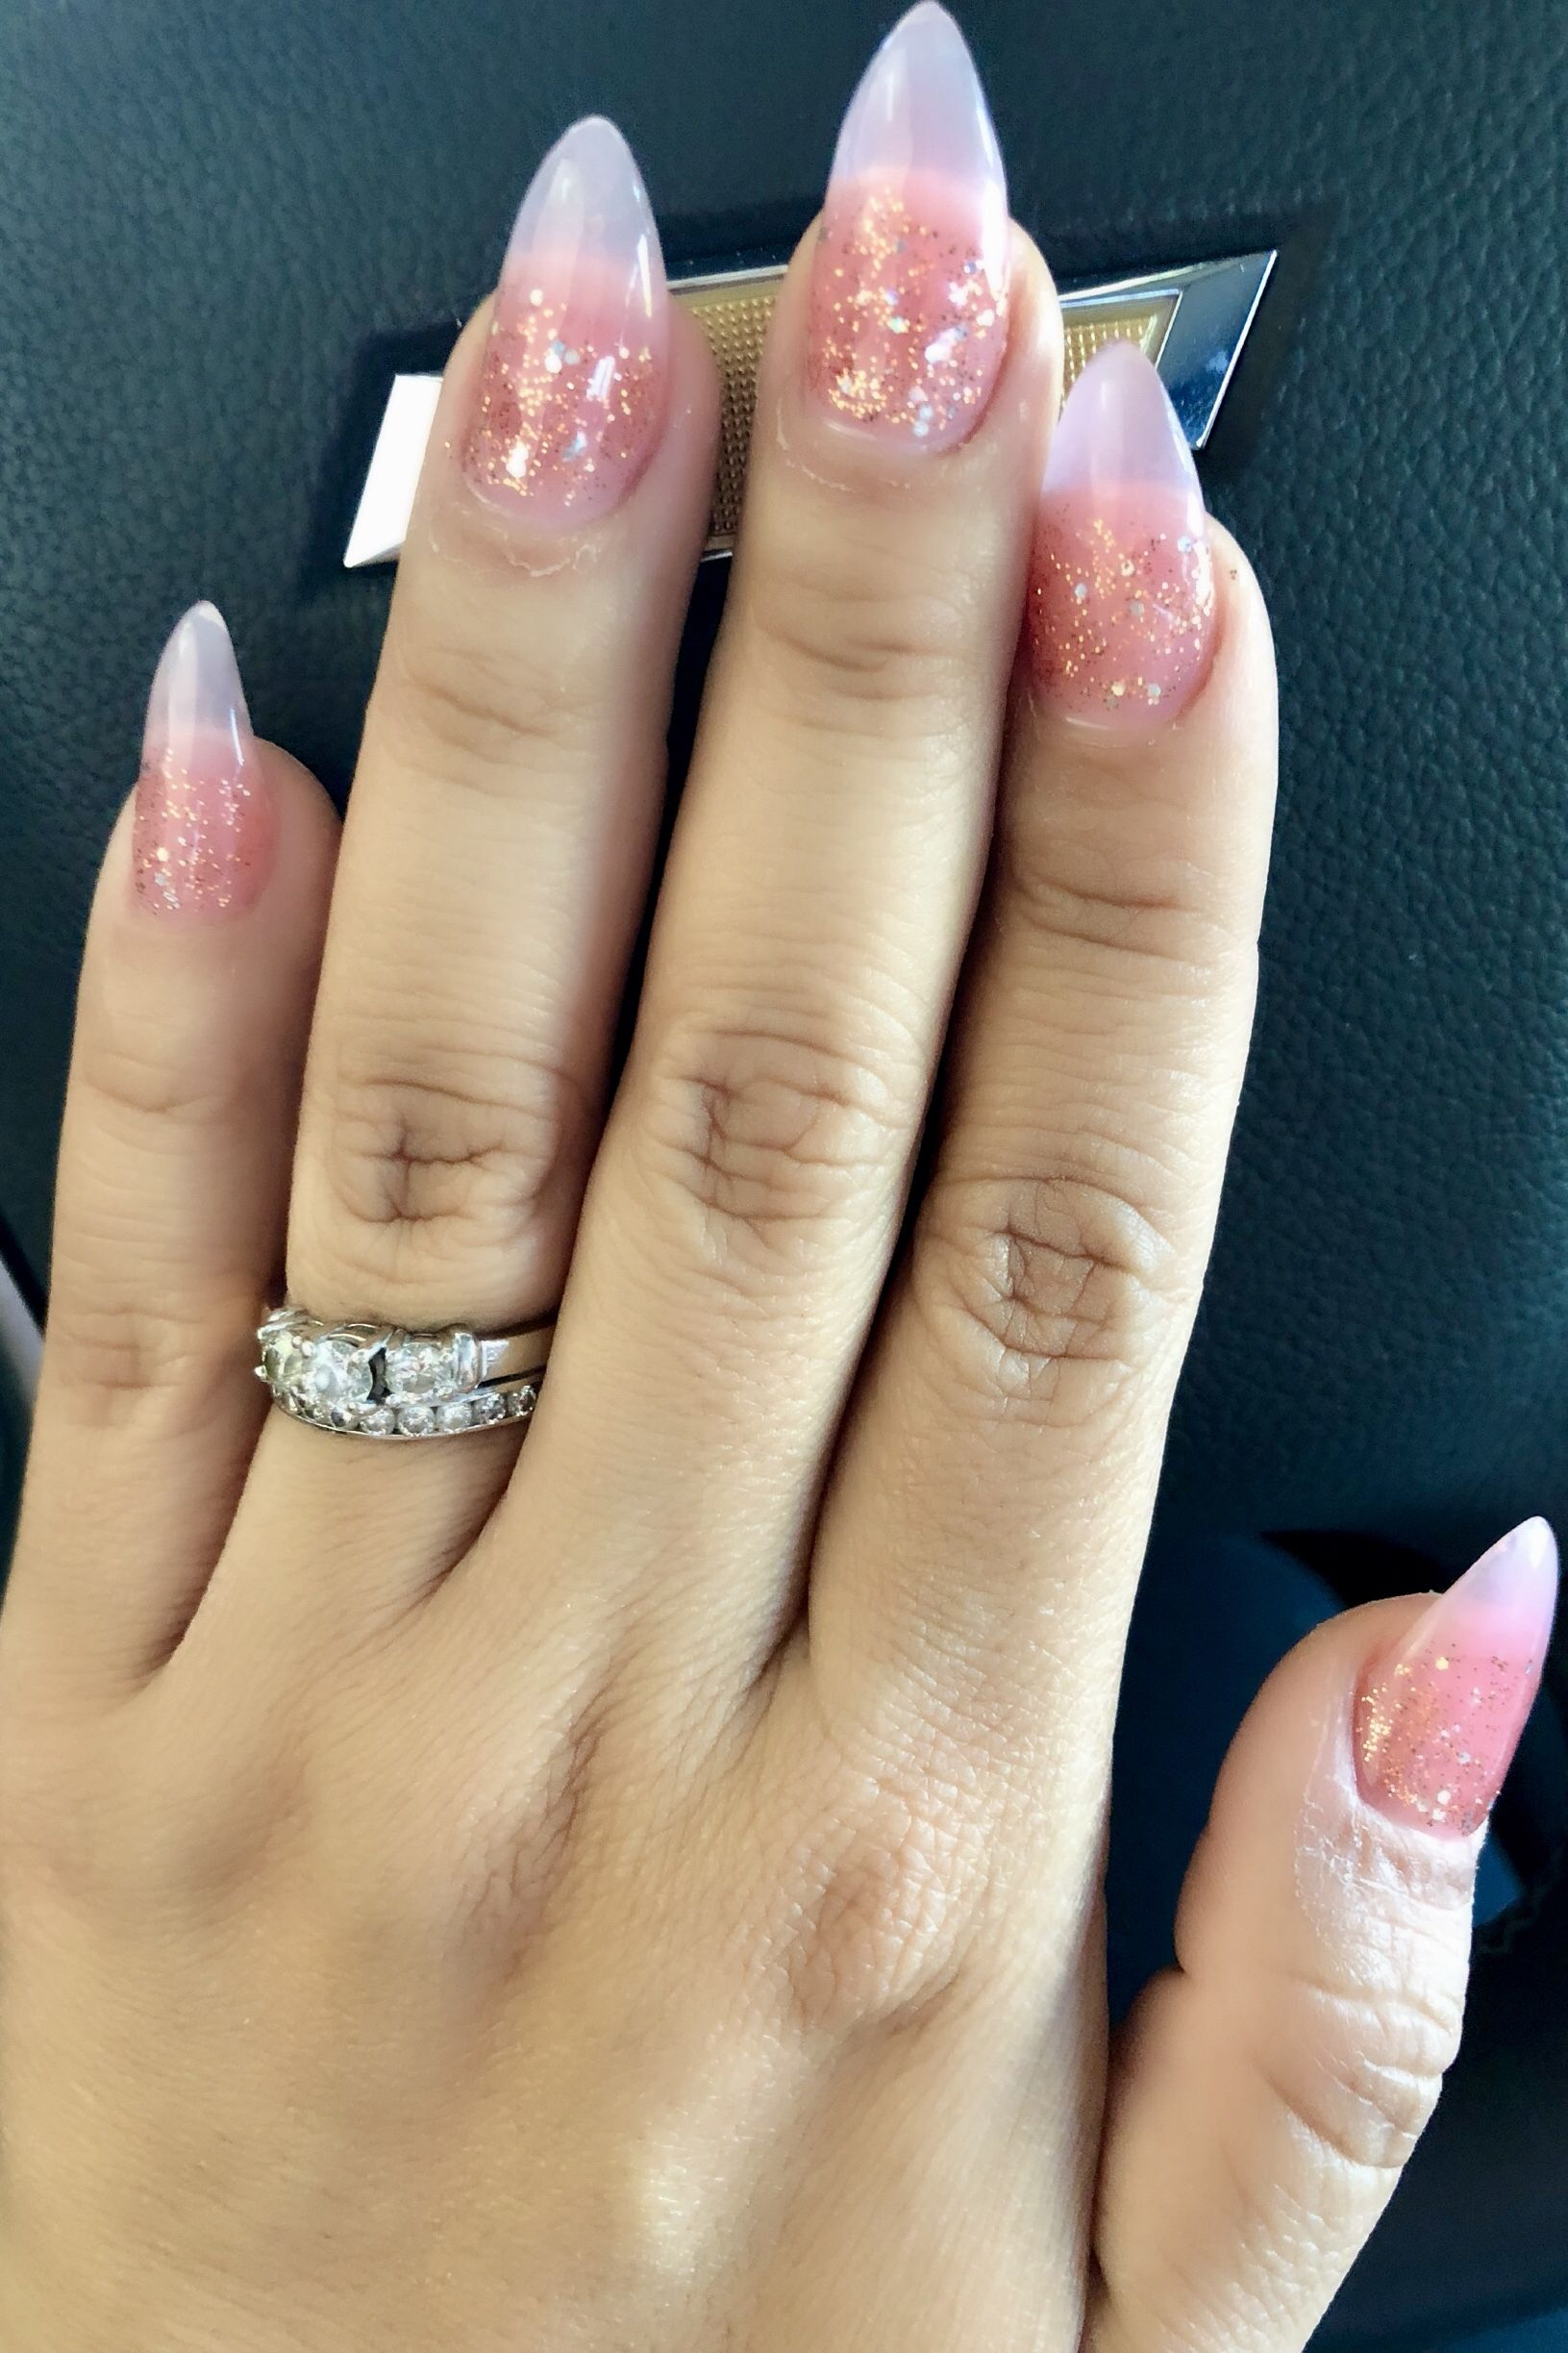 Pink Powder Acrylics Almond Nails With Rose Gold Glitter Rose Gold Nails Acrylic Gold Acrylic Nails Almond Acrylic Nails